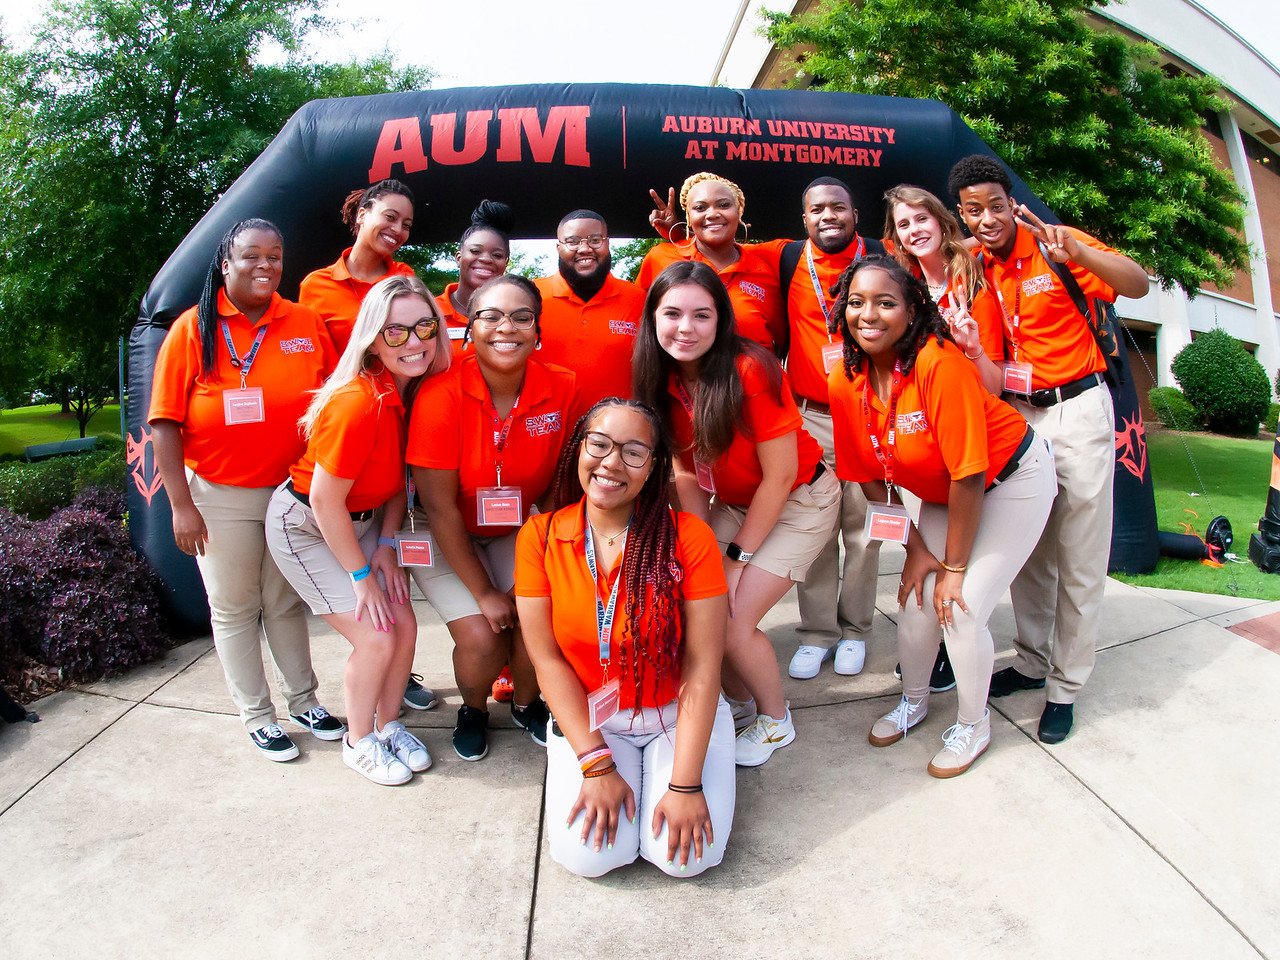 Group of AUM students smiling